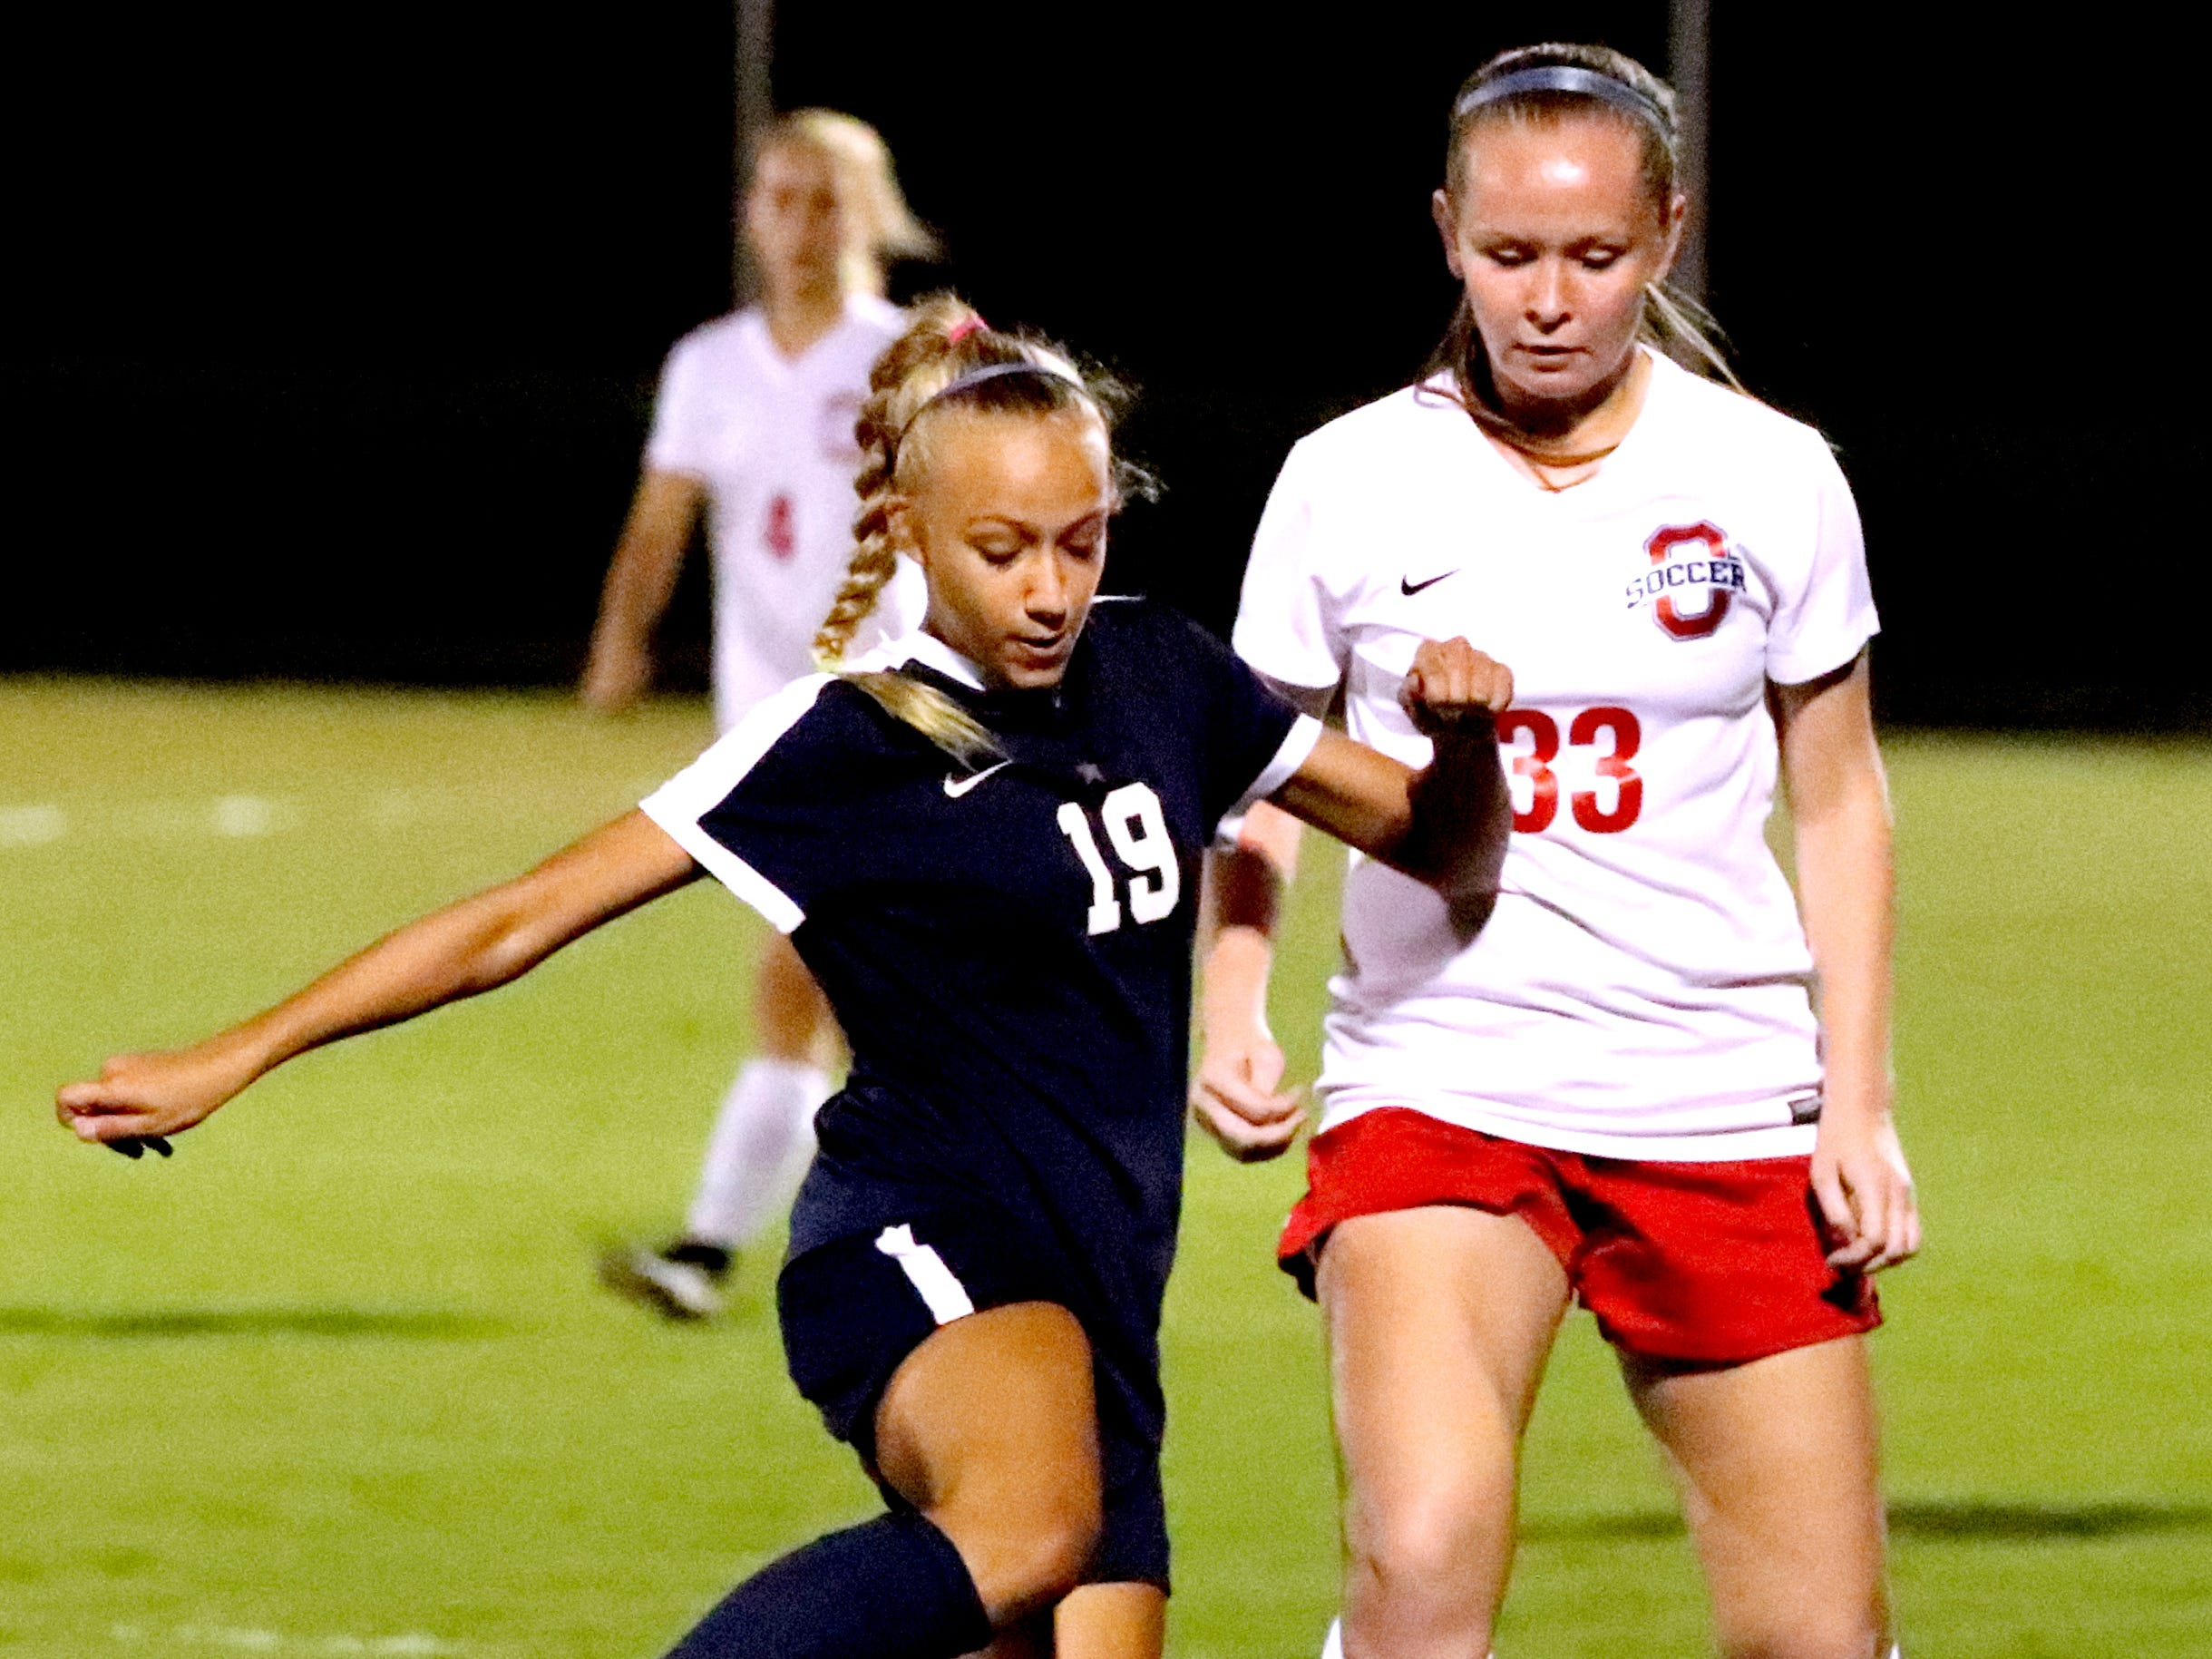 Siegel's Kyla Hawkins (19) moves the ball down the field as Oakland's Reagan Parker (33) defends her in the semifinals of the 7-AAA Soccer Tournament, on Tuesday,  Oct. 09, 2018 at the Siegel Soccer Complex.